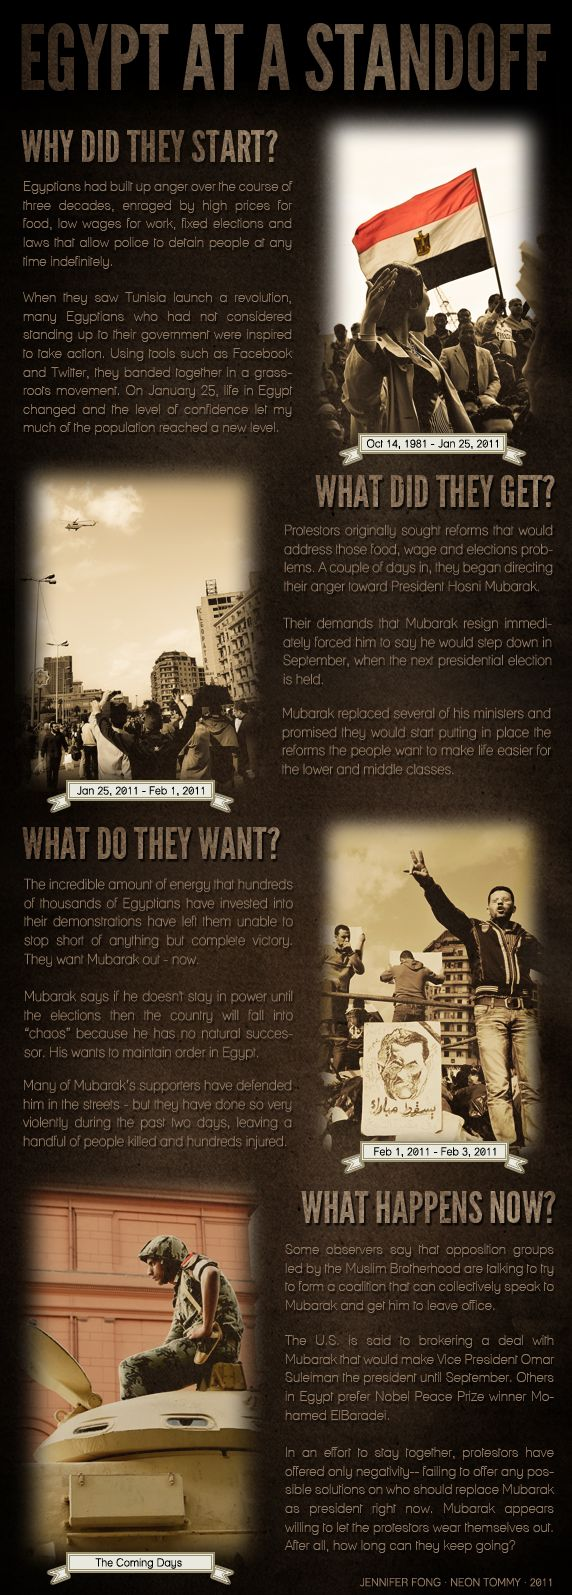 Why Are People In Egypt Still Protesting? - INFOGRAPHIC | Neon Tommy